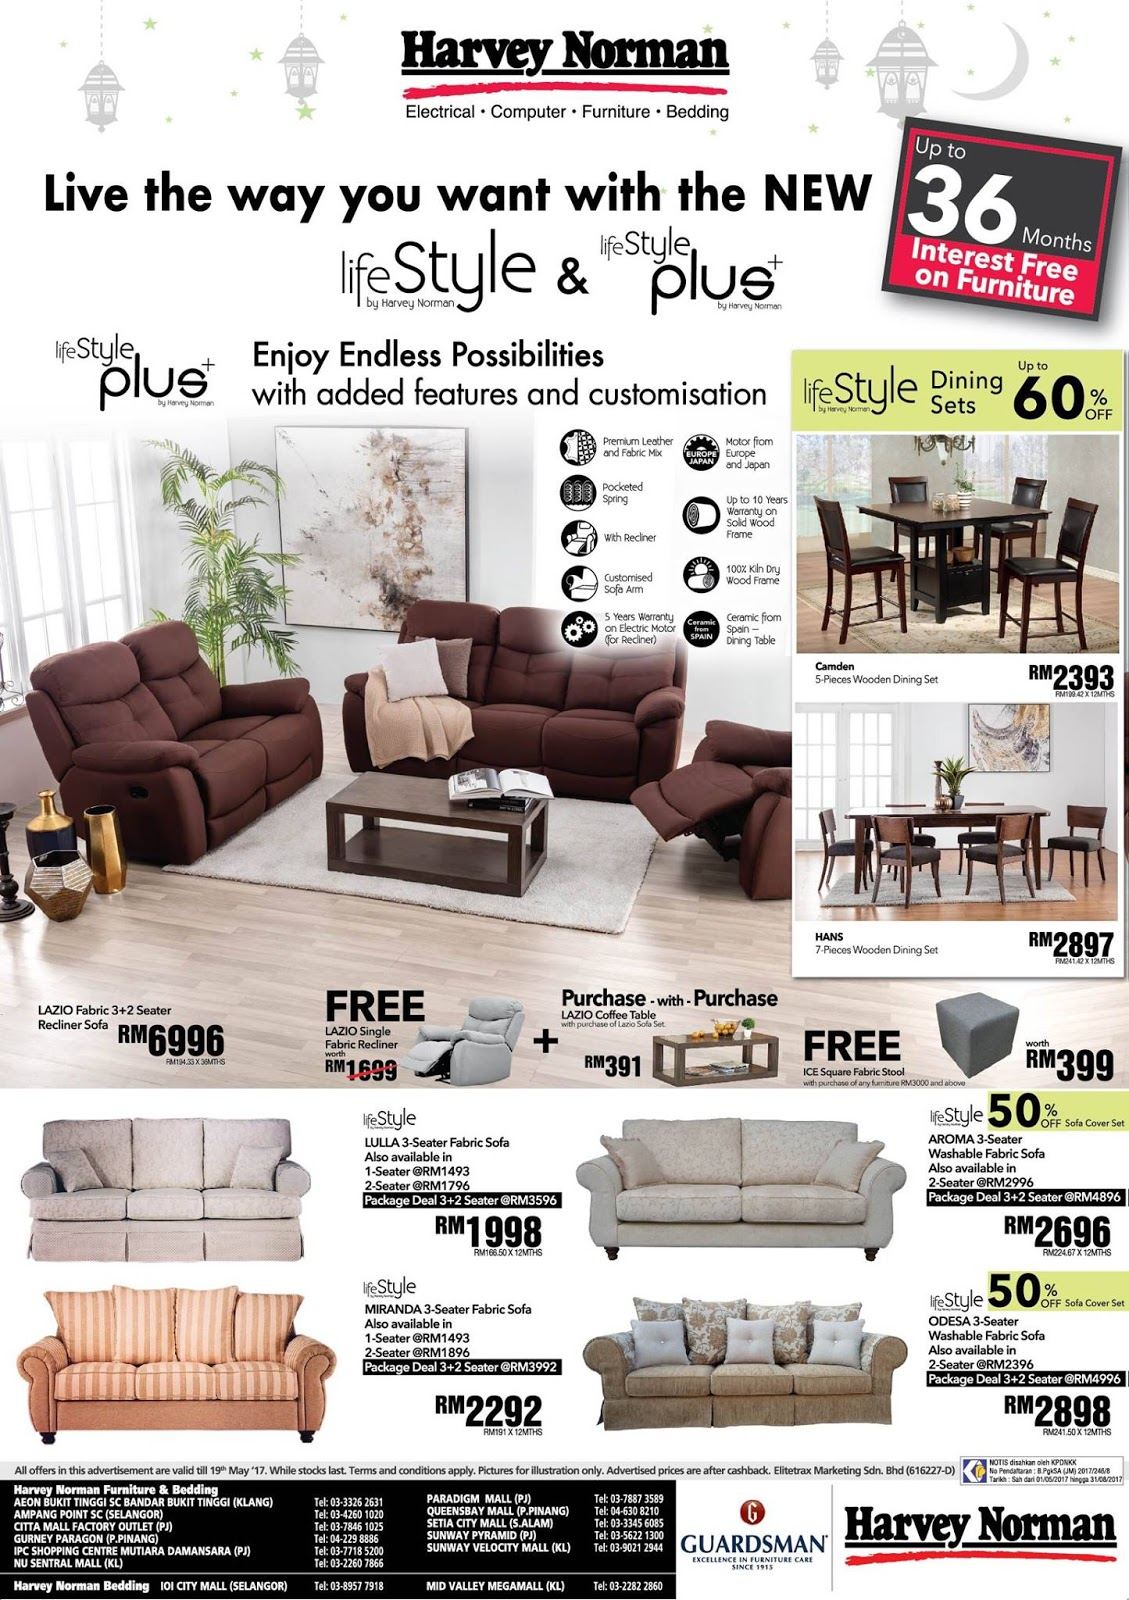 sofa furniture sale malaysia double bed hotel harvey norman ramadhan al mubarak until 9 june 2017